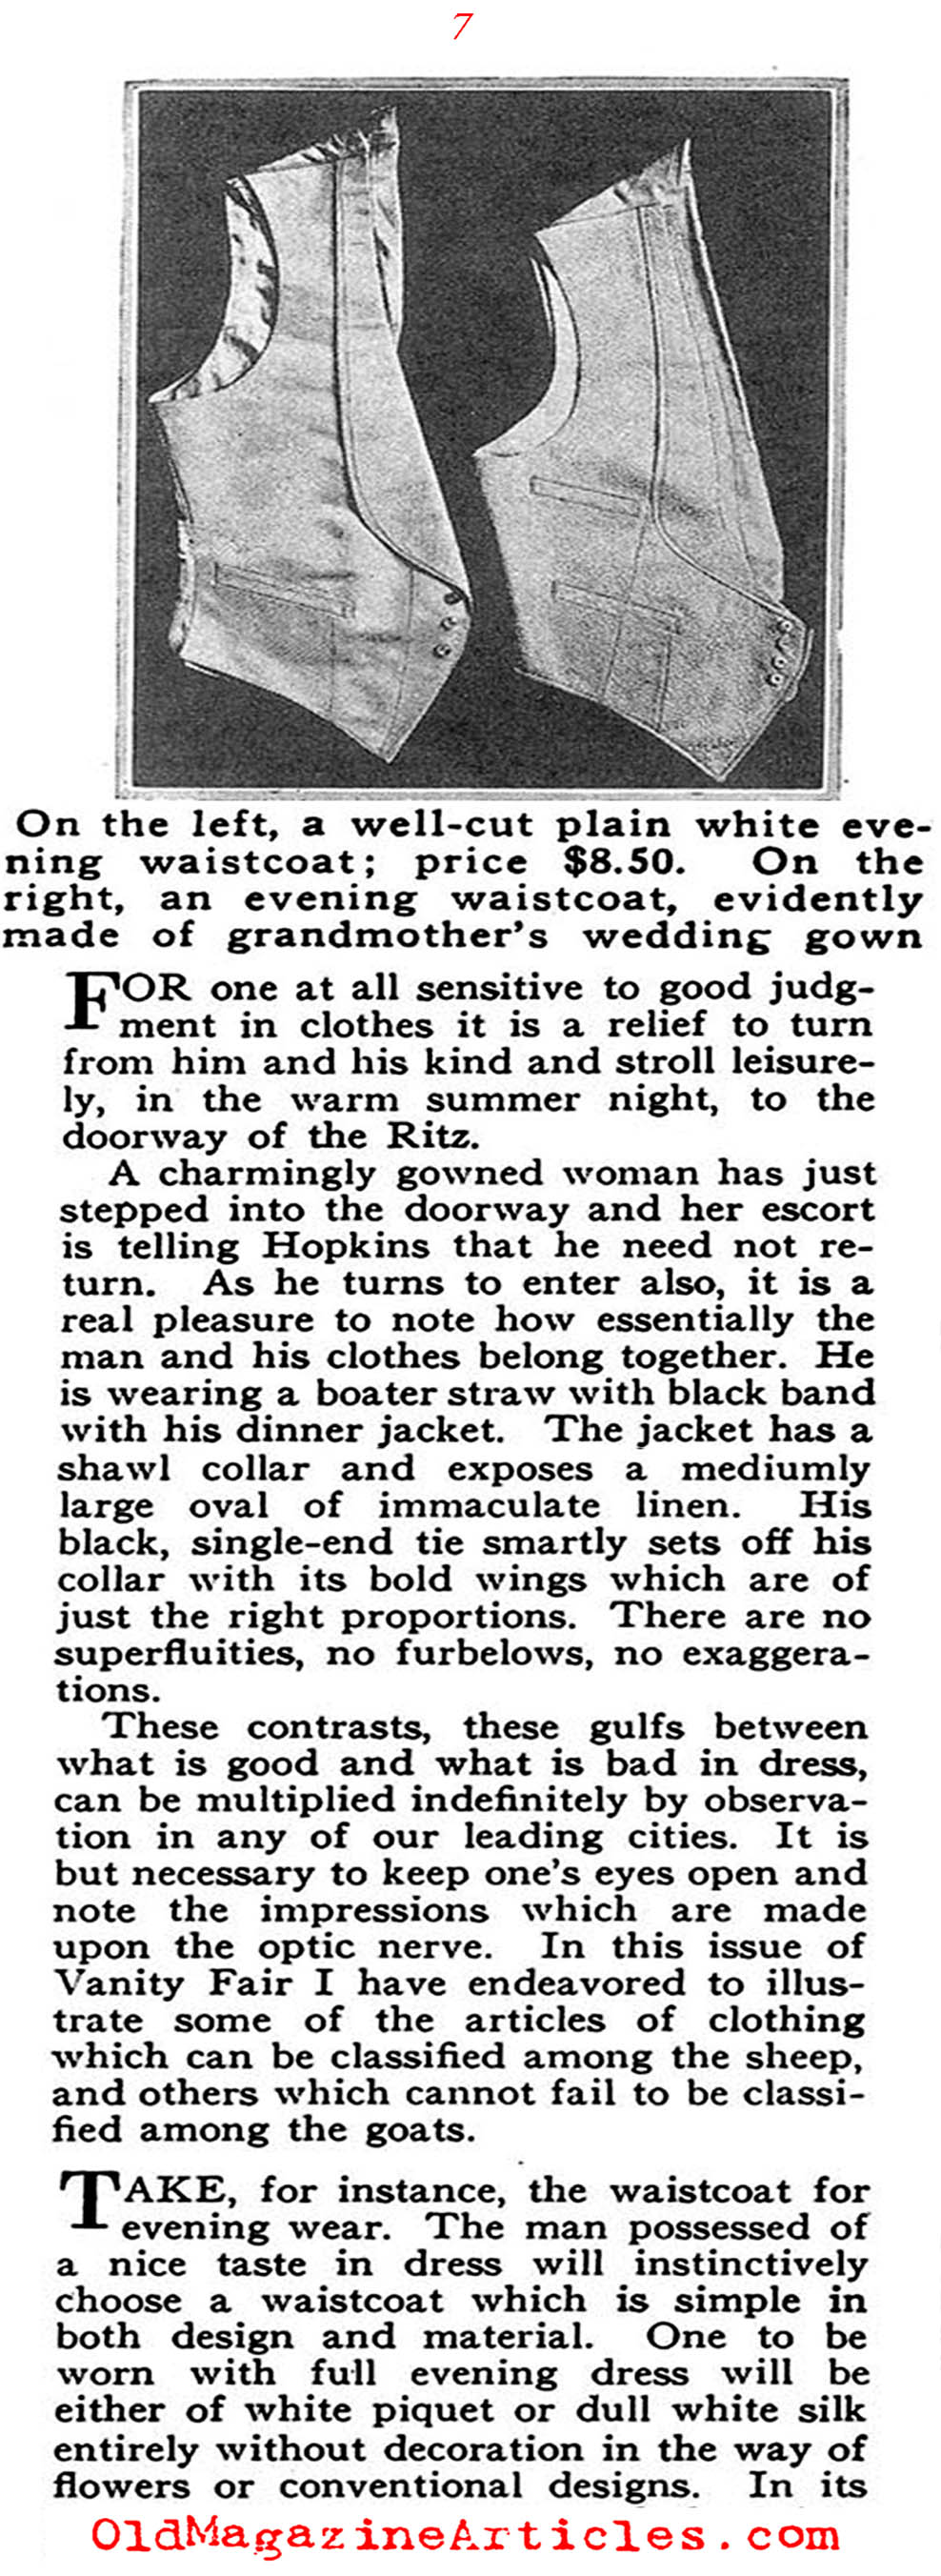 The Well Dressed Man Confronts Bad Taste  (Vanity Fair Magazine, 1918)